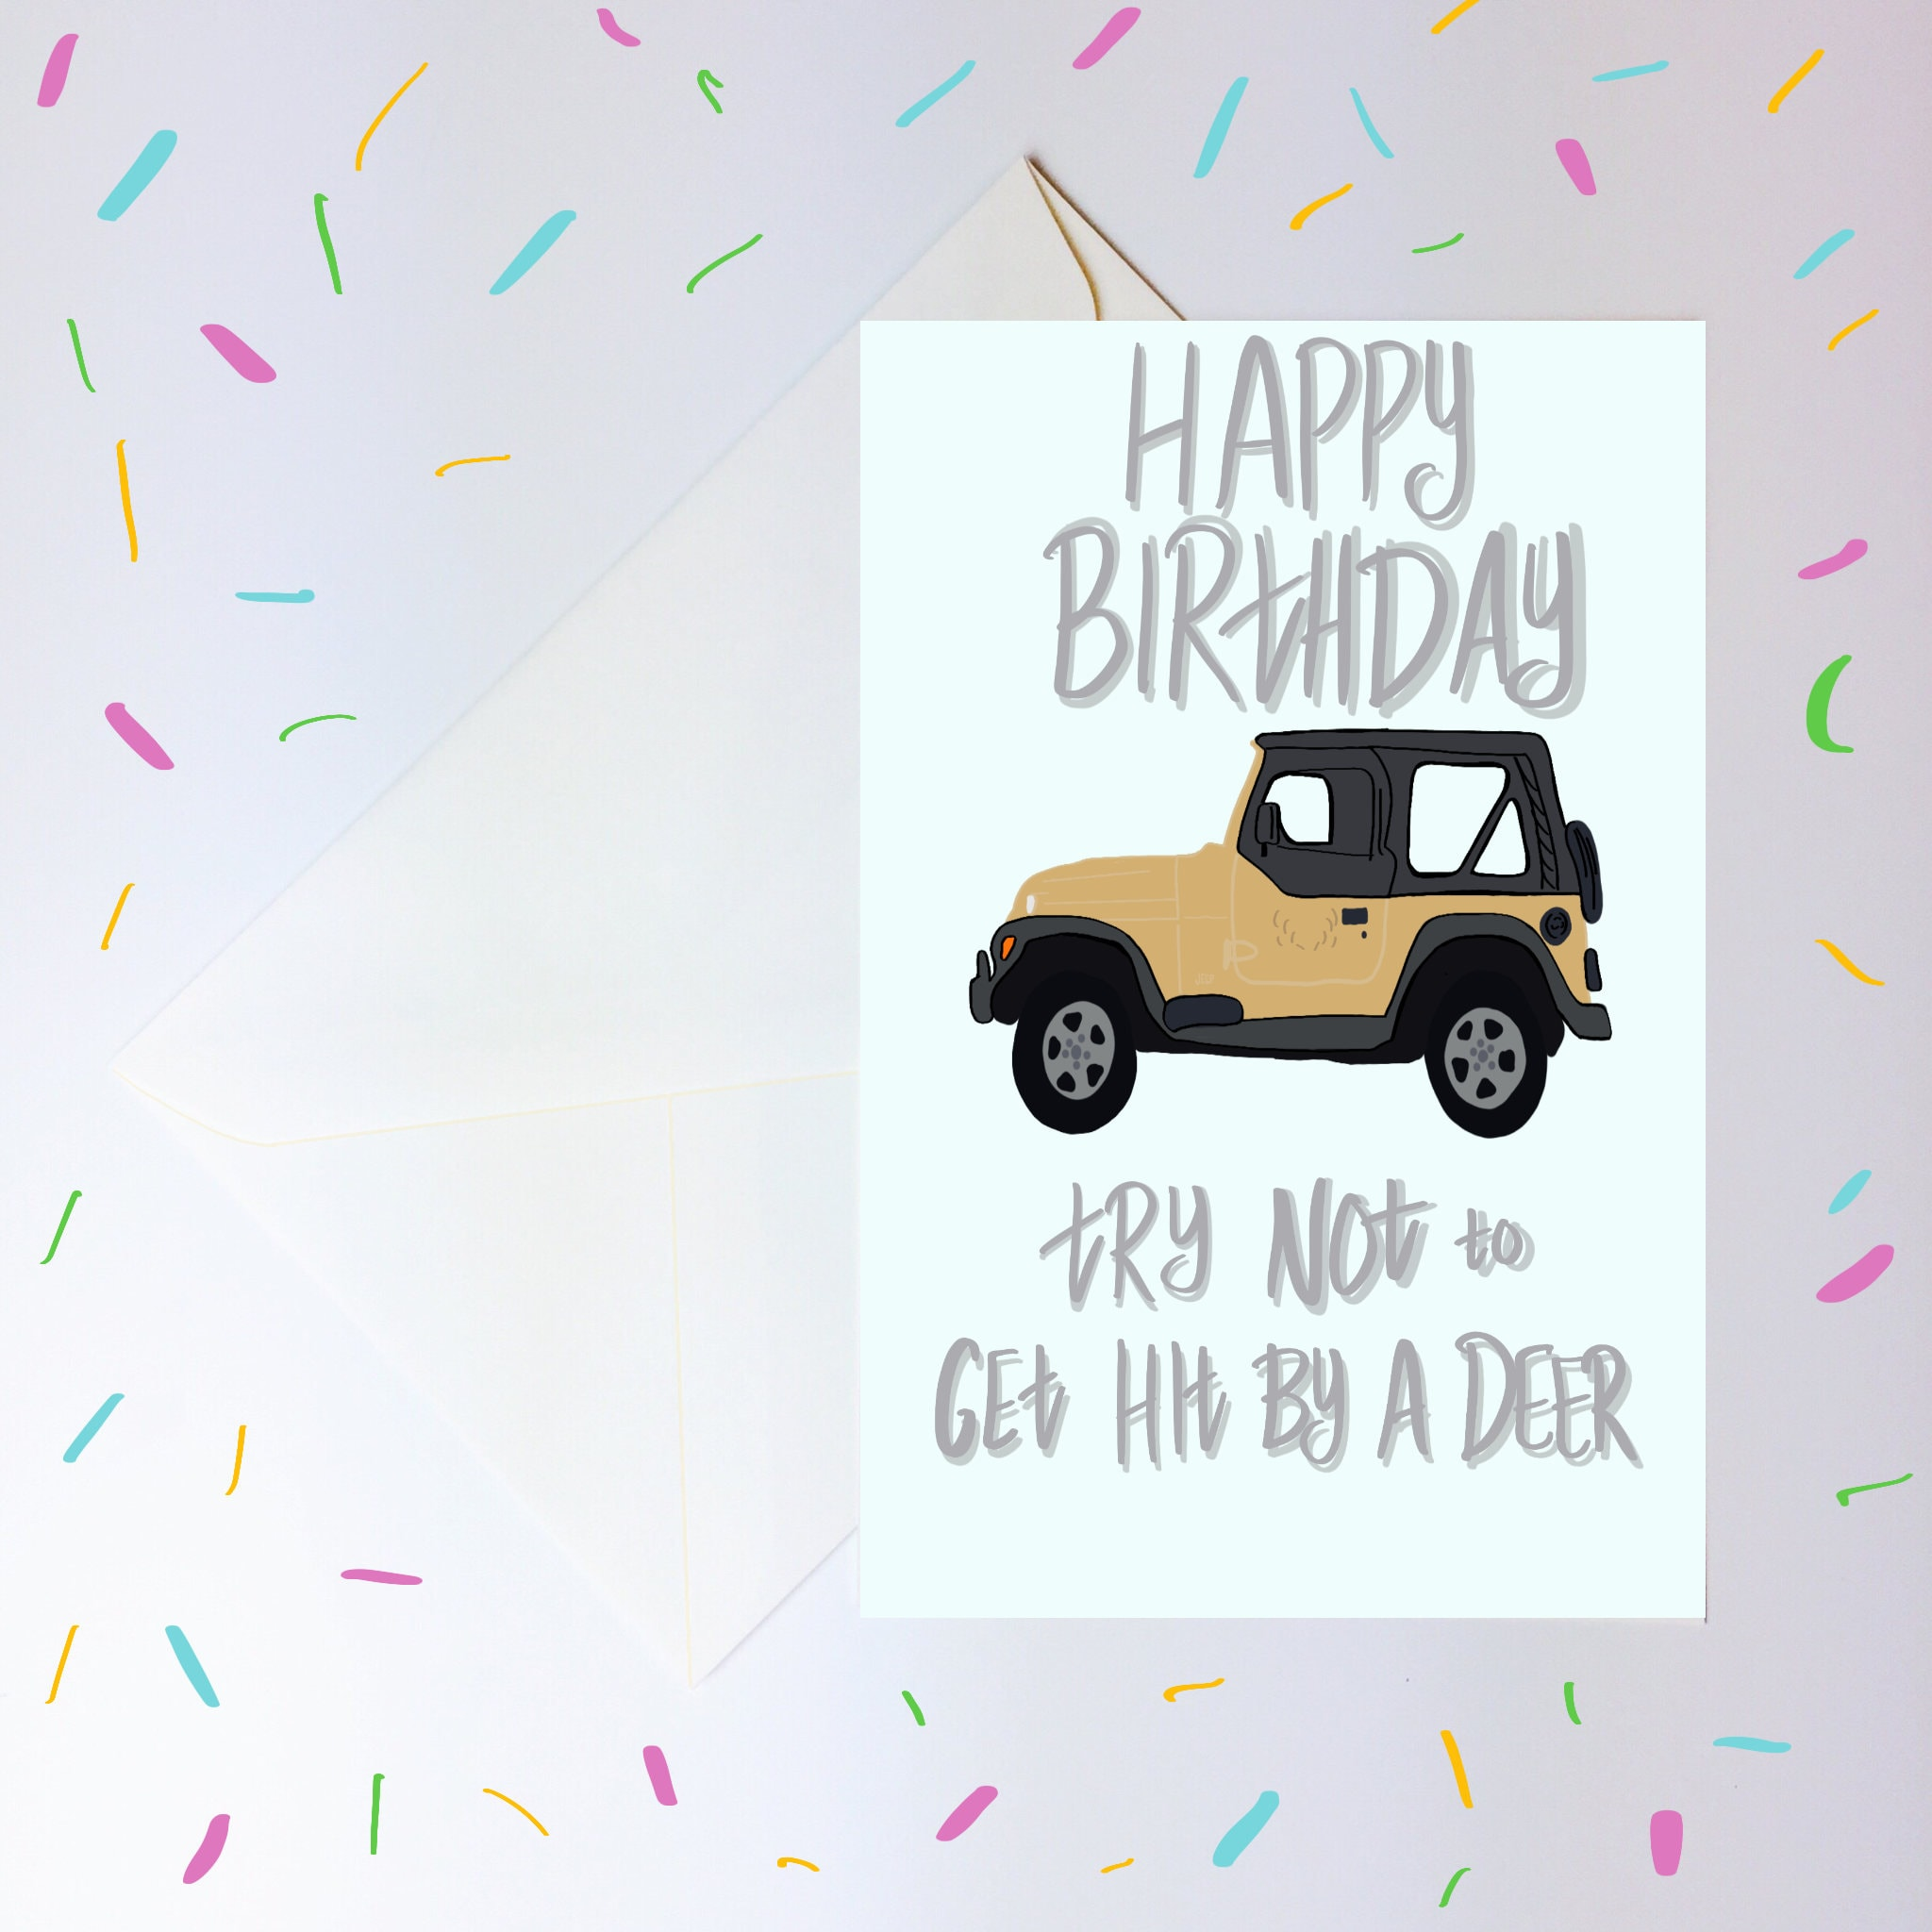 Gilmore Girls TV Show Printable Birthday Card Hit By A Deer